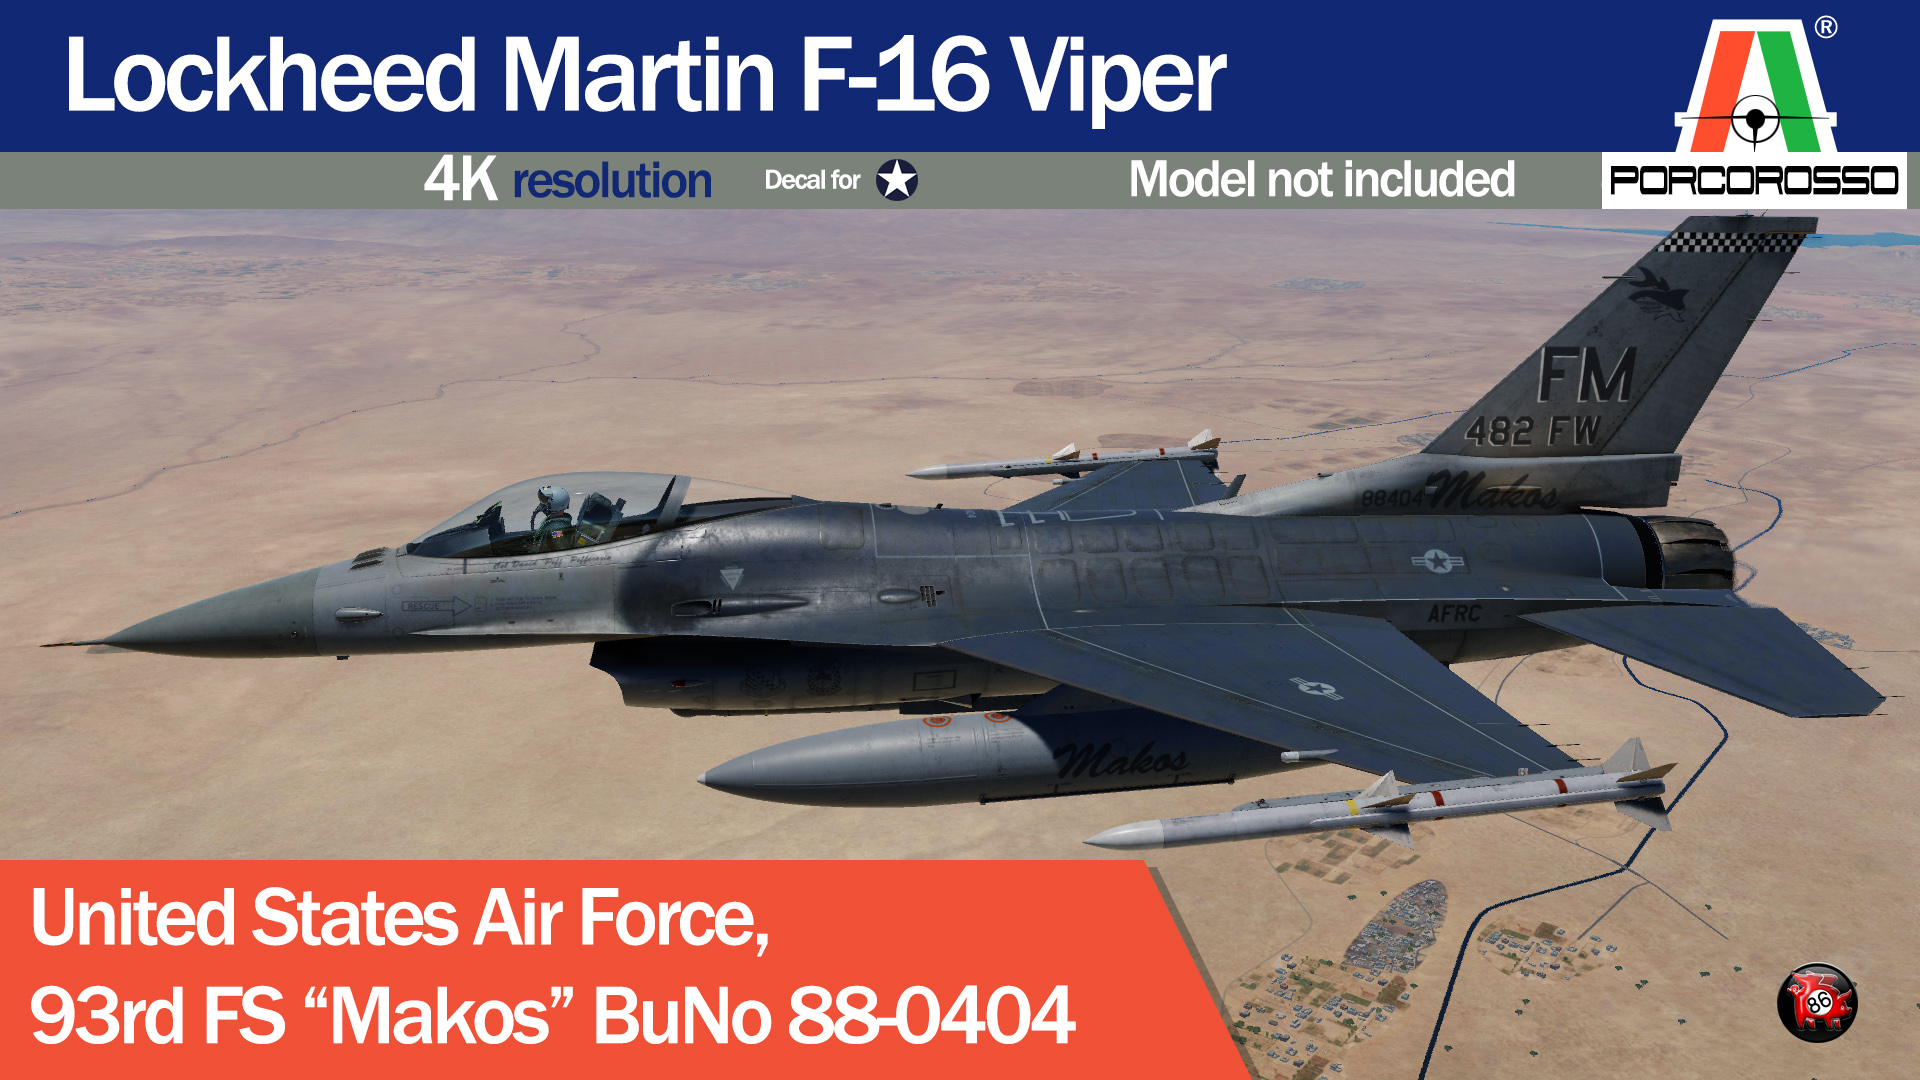 "USAF 93rd FS ""Makos"" Serial No. 88-0404 by PorcoRosso86 UPDATE"